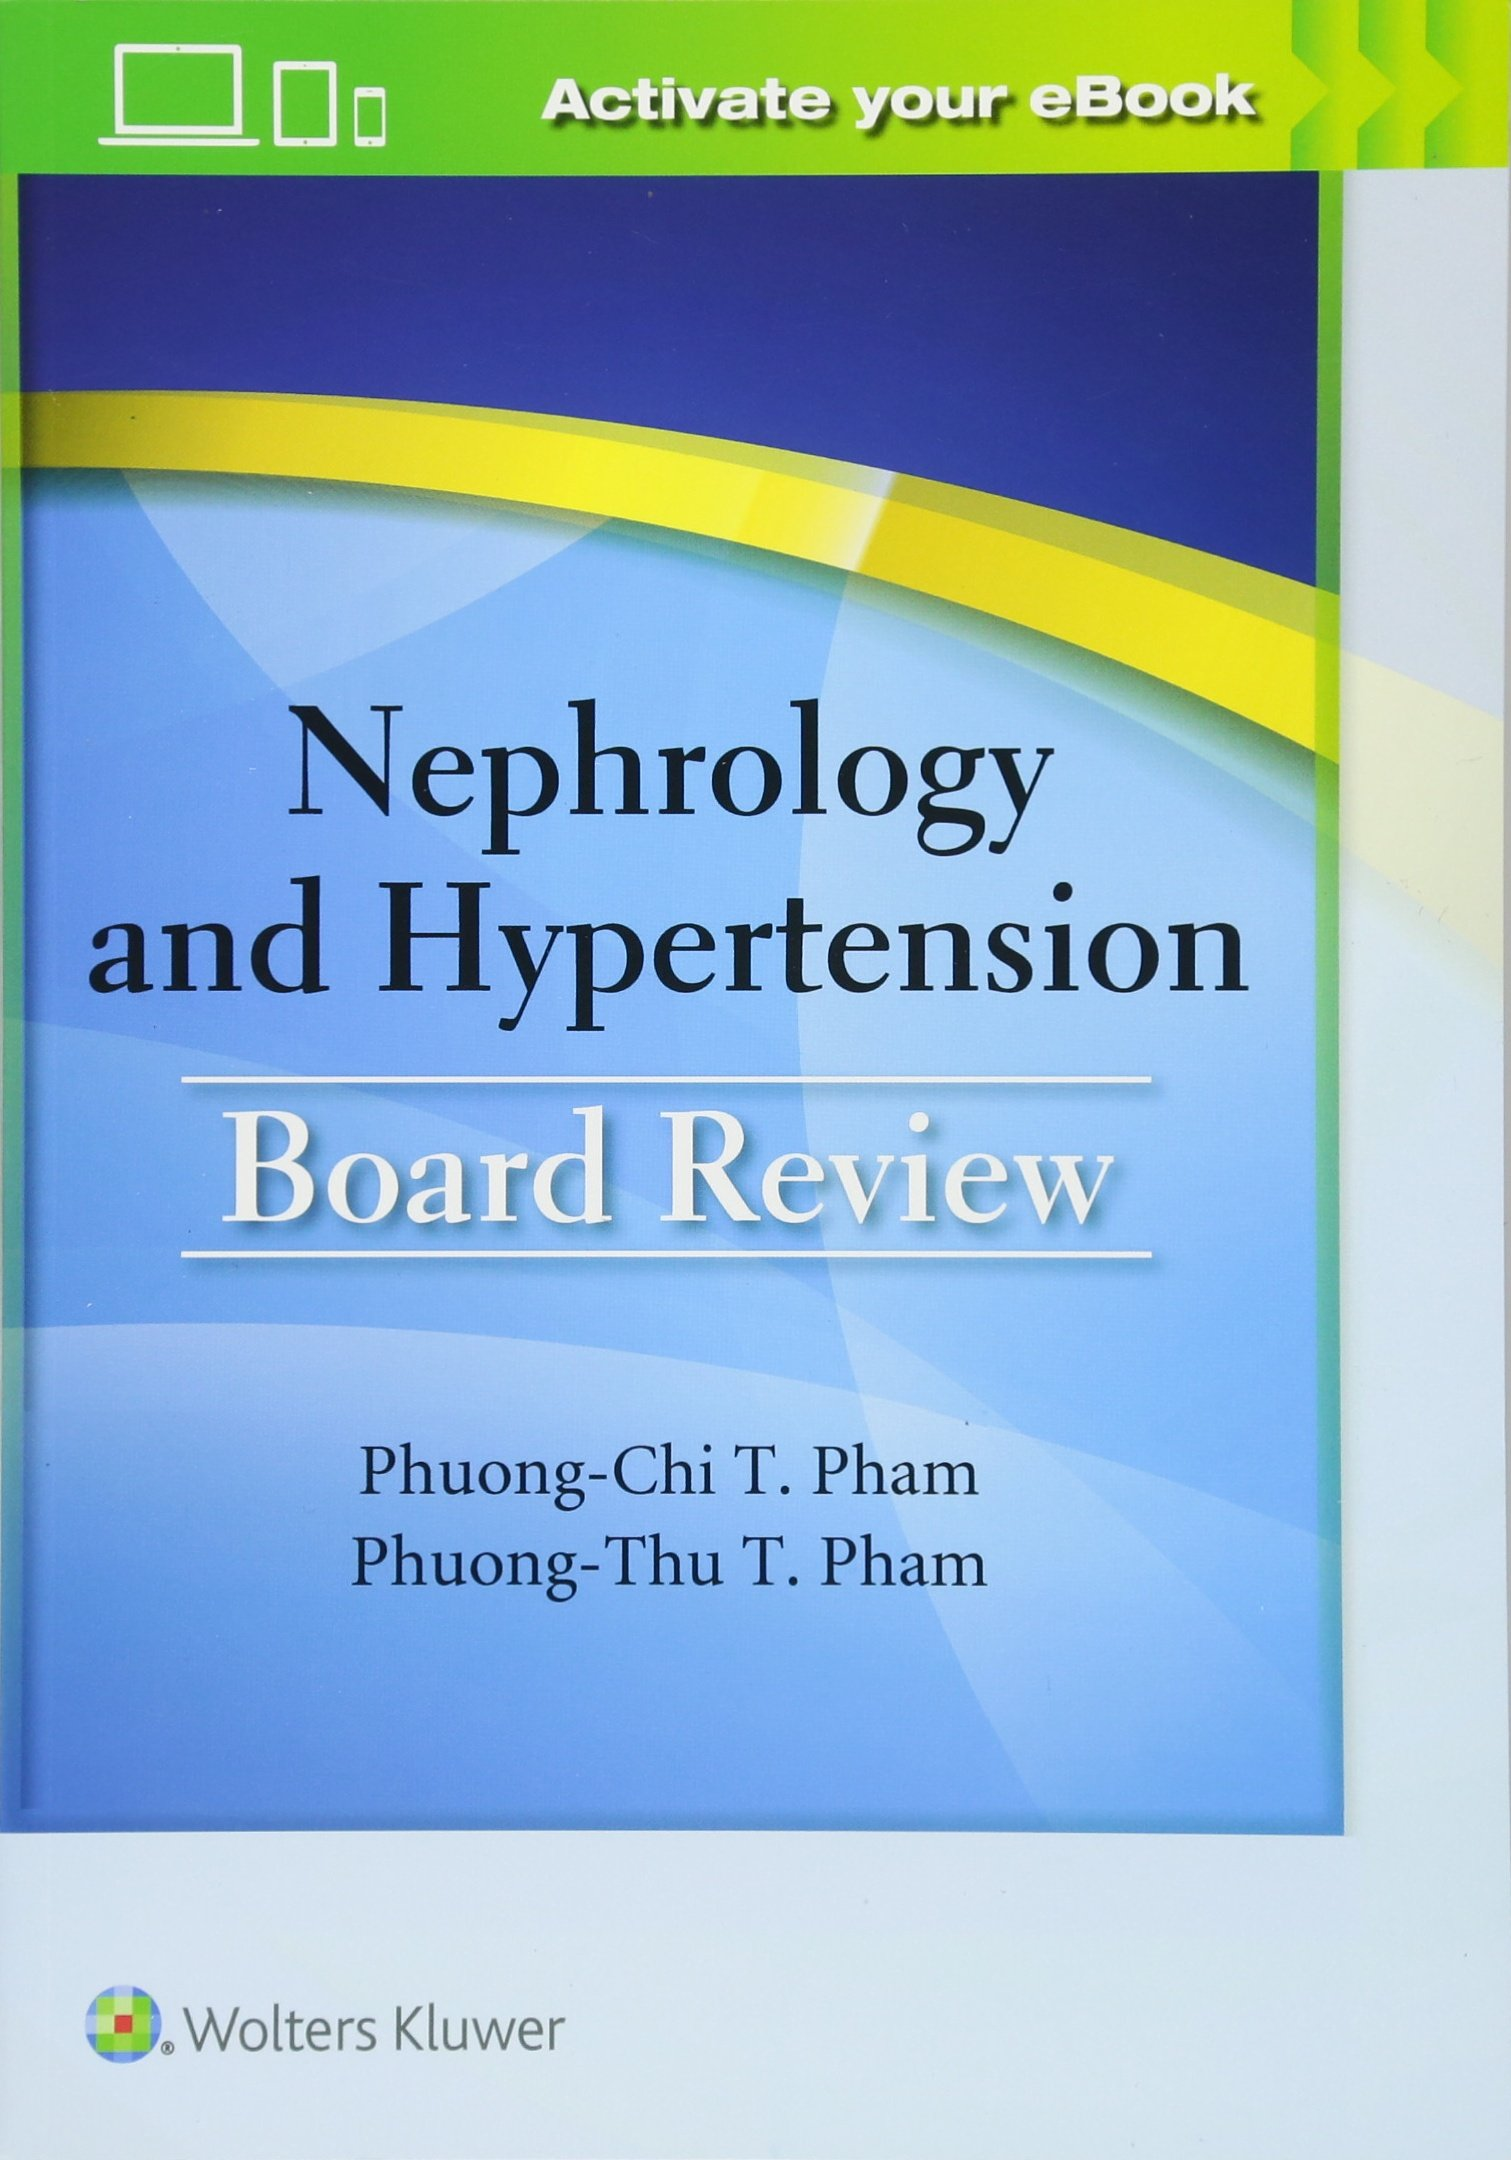 Buy Nephrology and Hypertension Board Review Book Online at